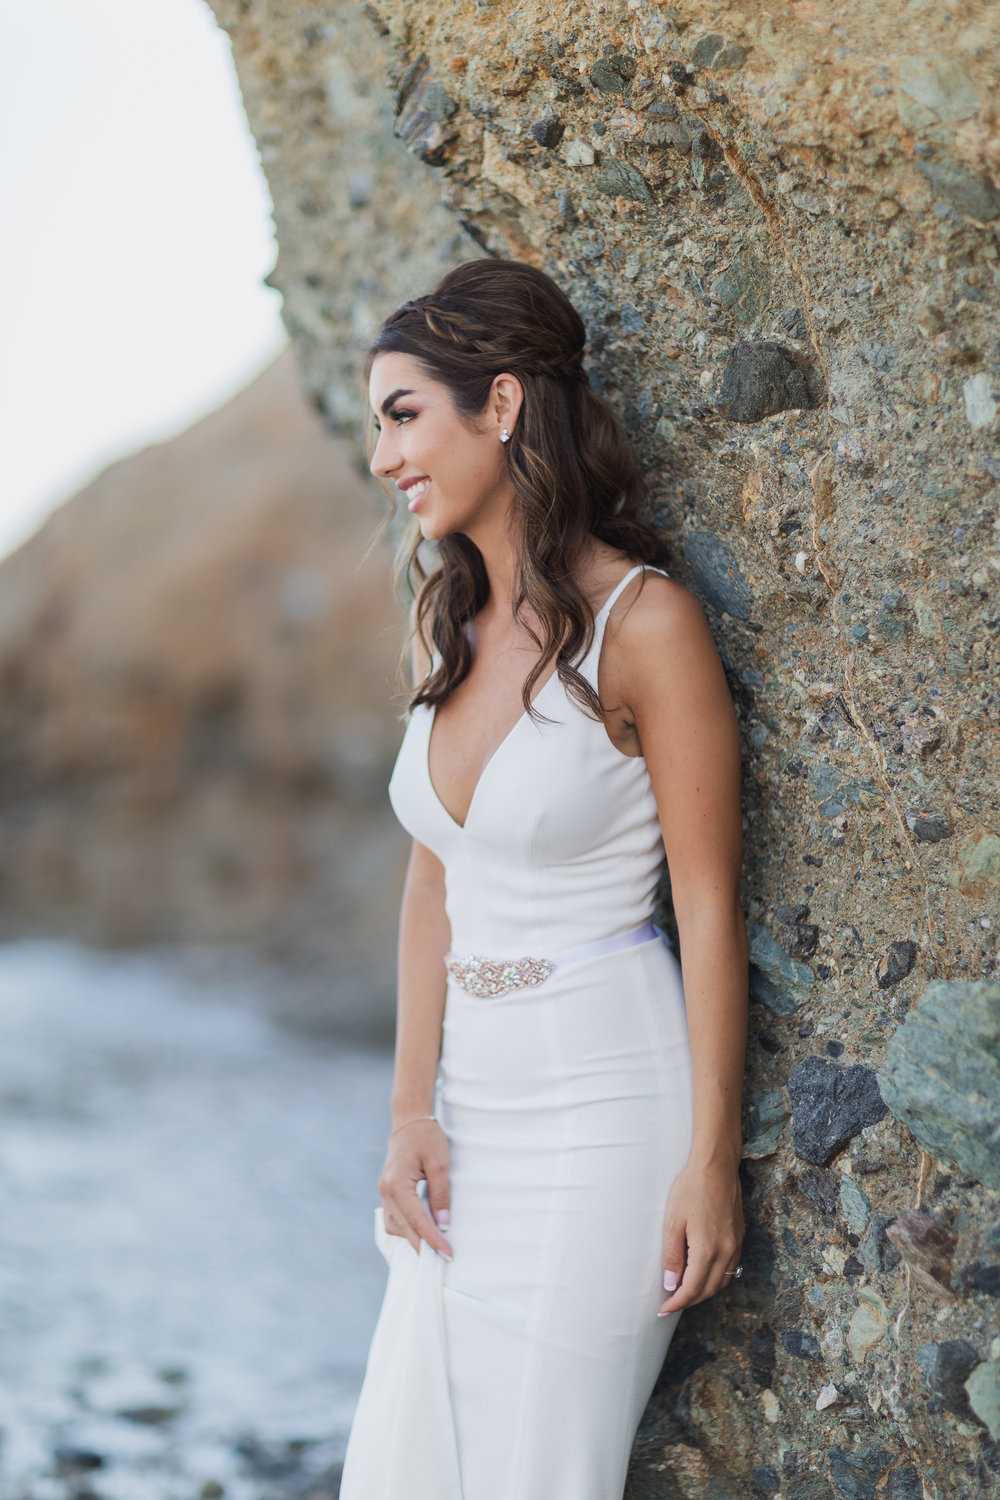 Photo of Beautiful Bride in a simple white wedding form fitting dress on the rocky beach.jpg